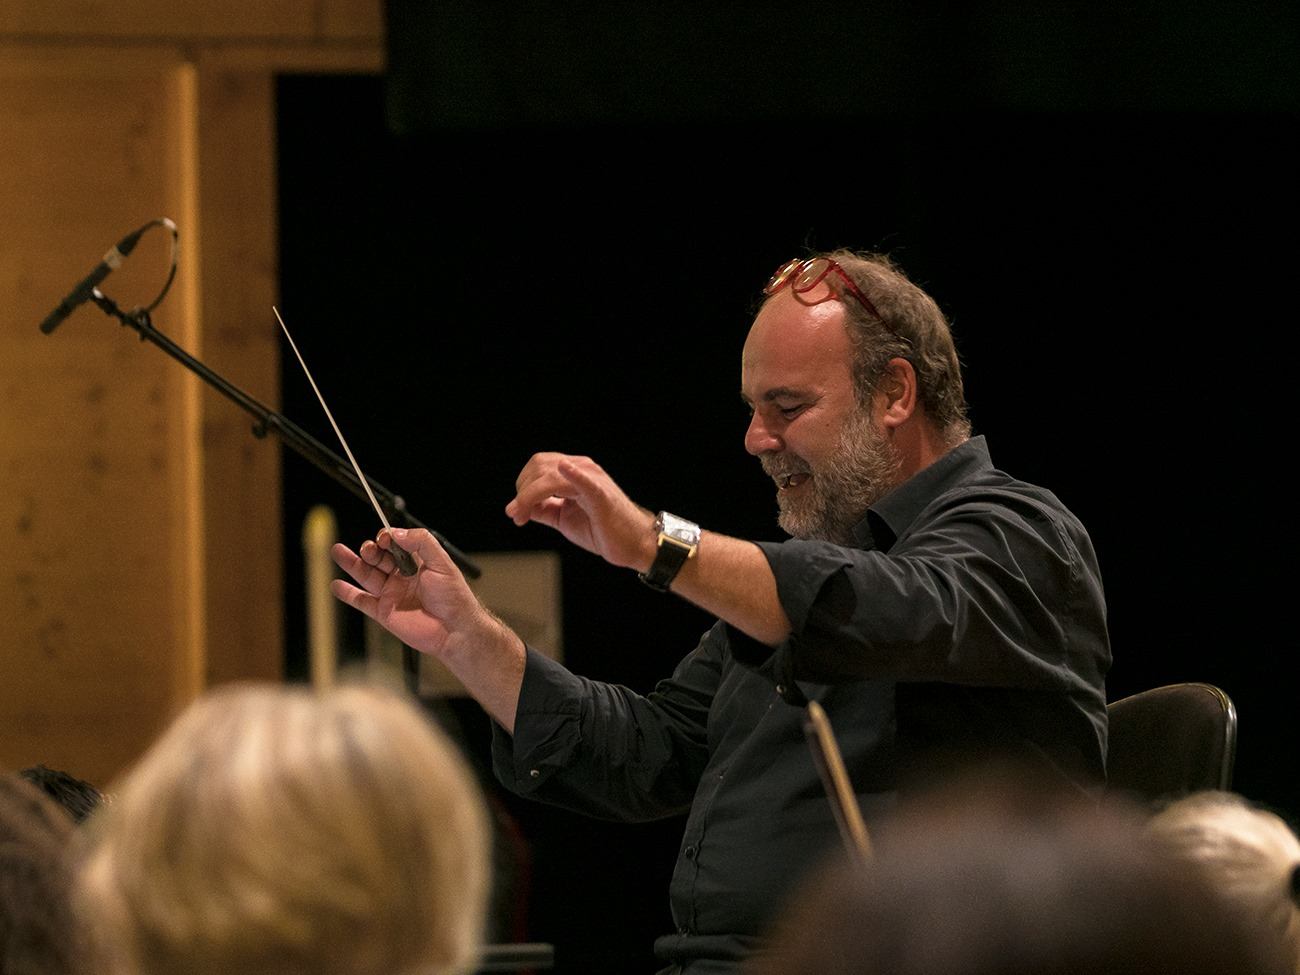 Conductor Samuel Jean during the recording sessions. (Photo: Palazzetto BruZane)